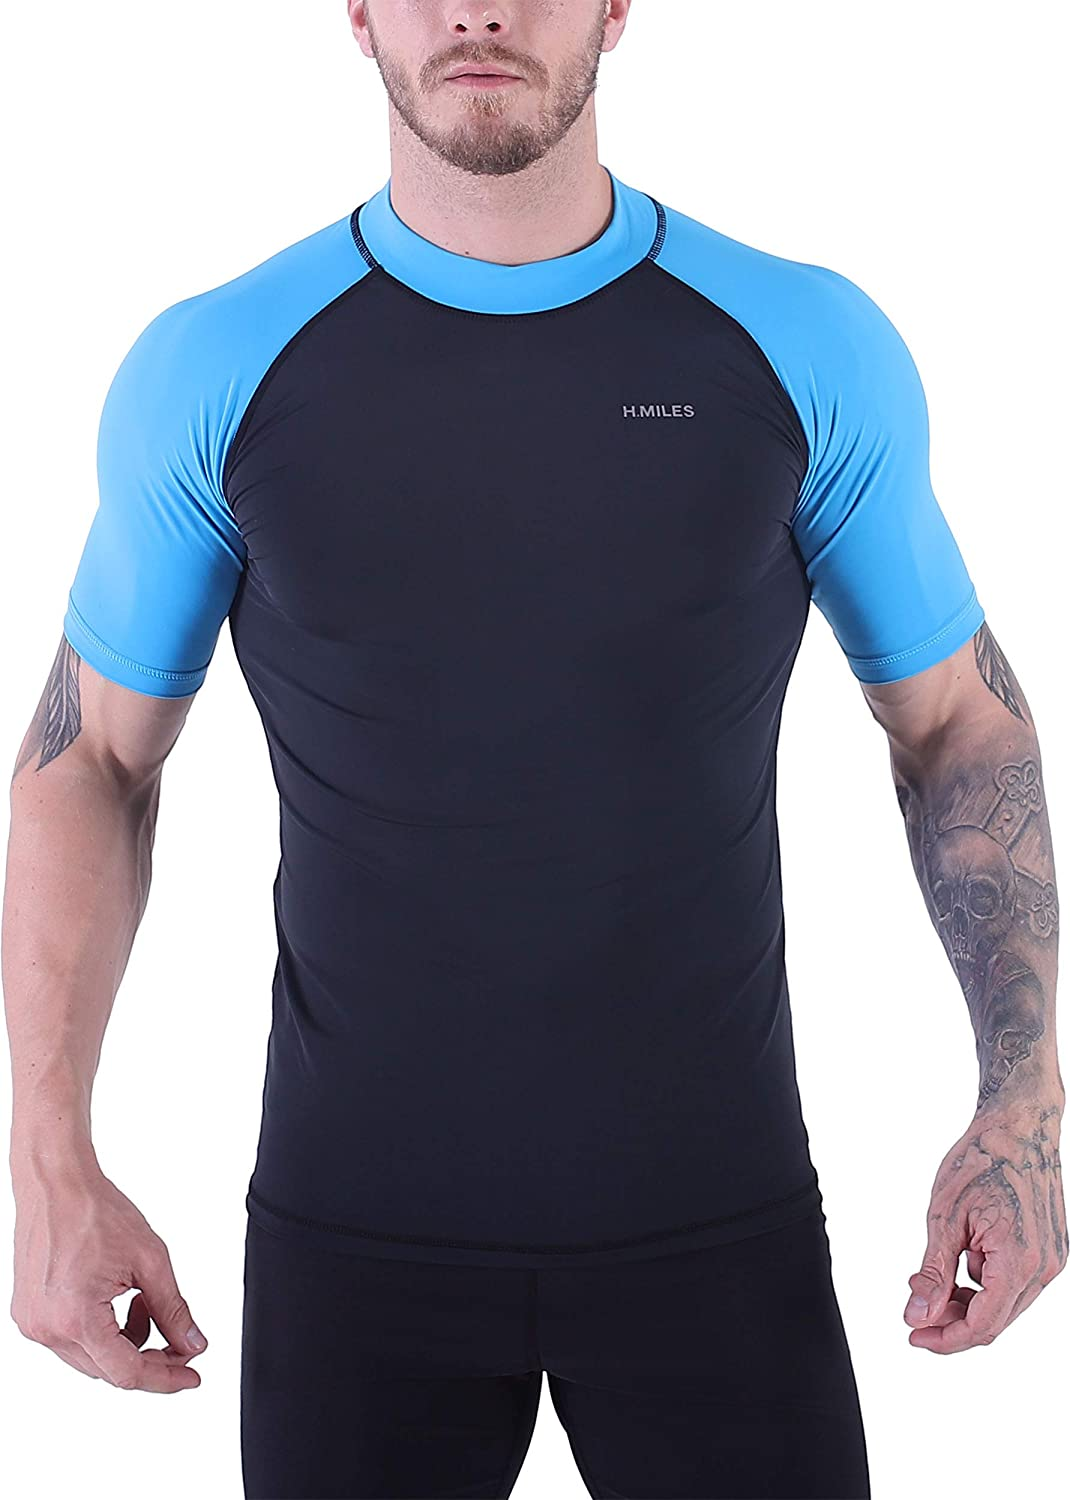 Mens UV Protection Short Sleeve Rash Guard Swim Shirt Quick Dry Athletic Surfing Tops S-3XL